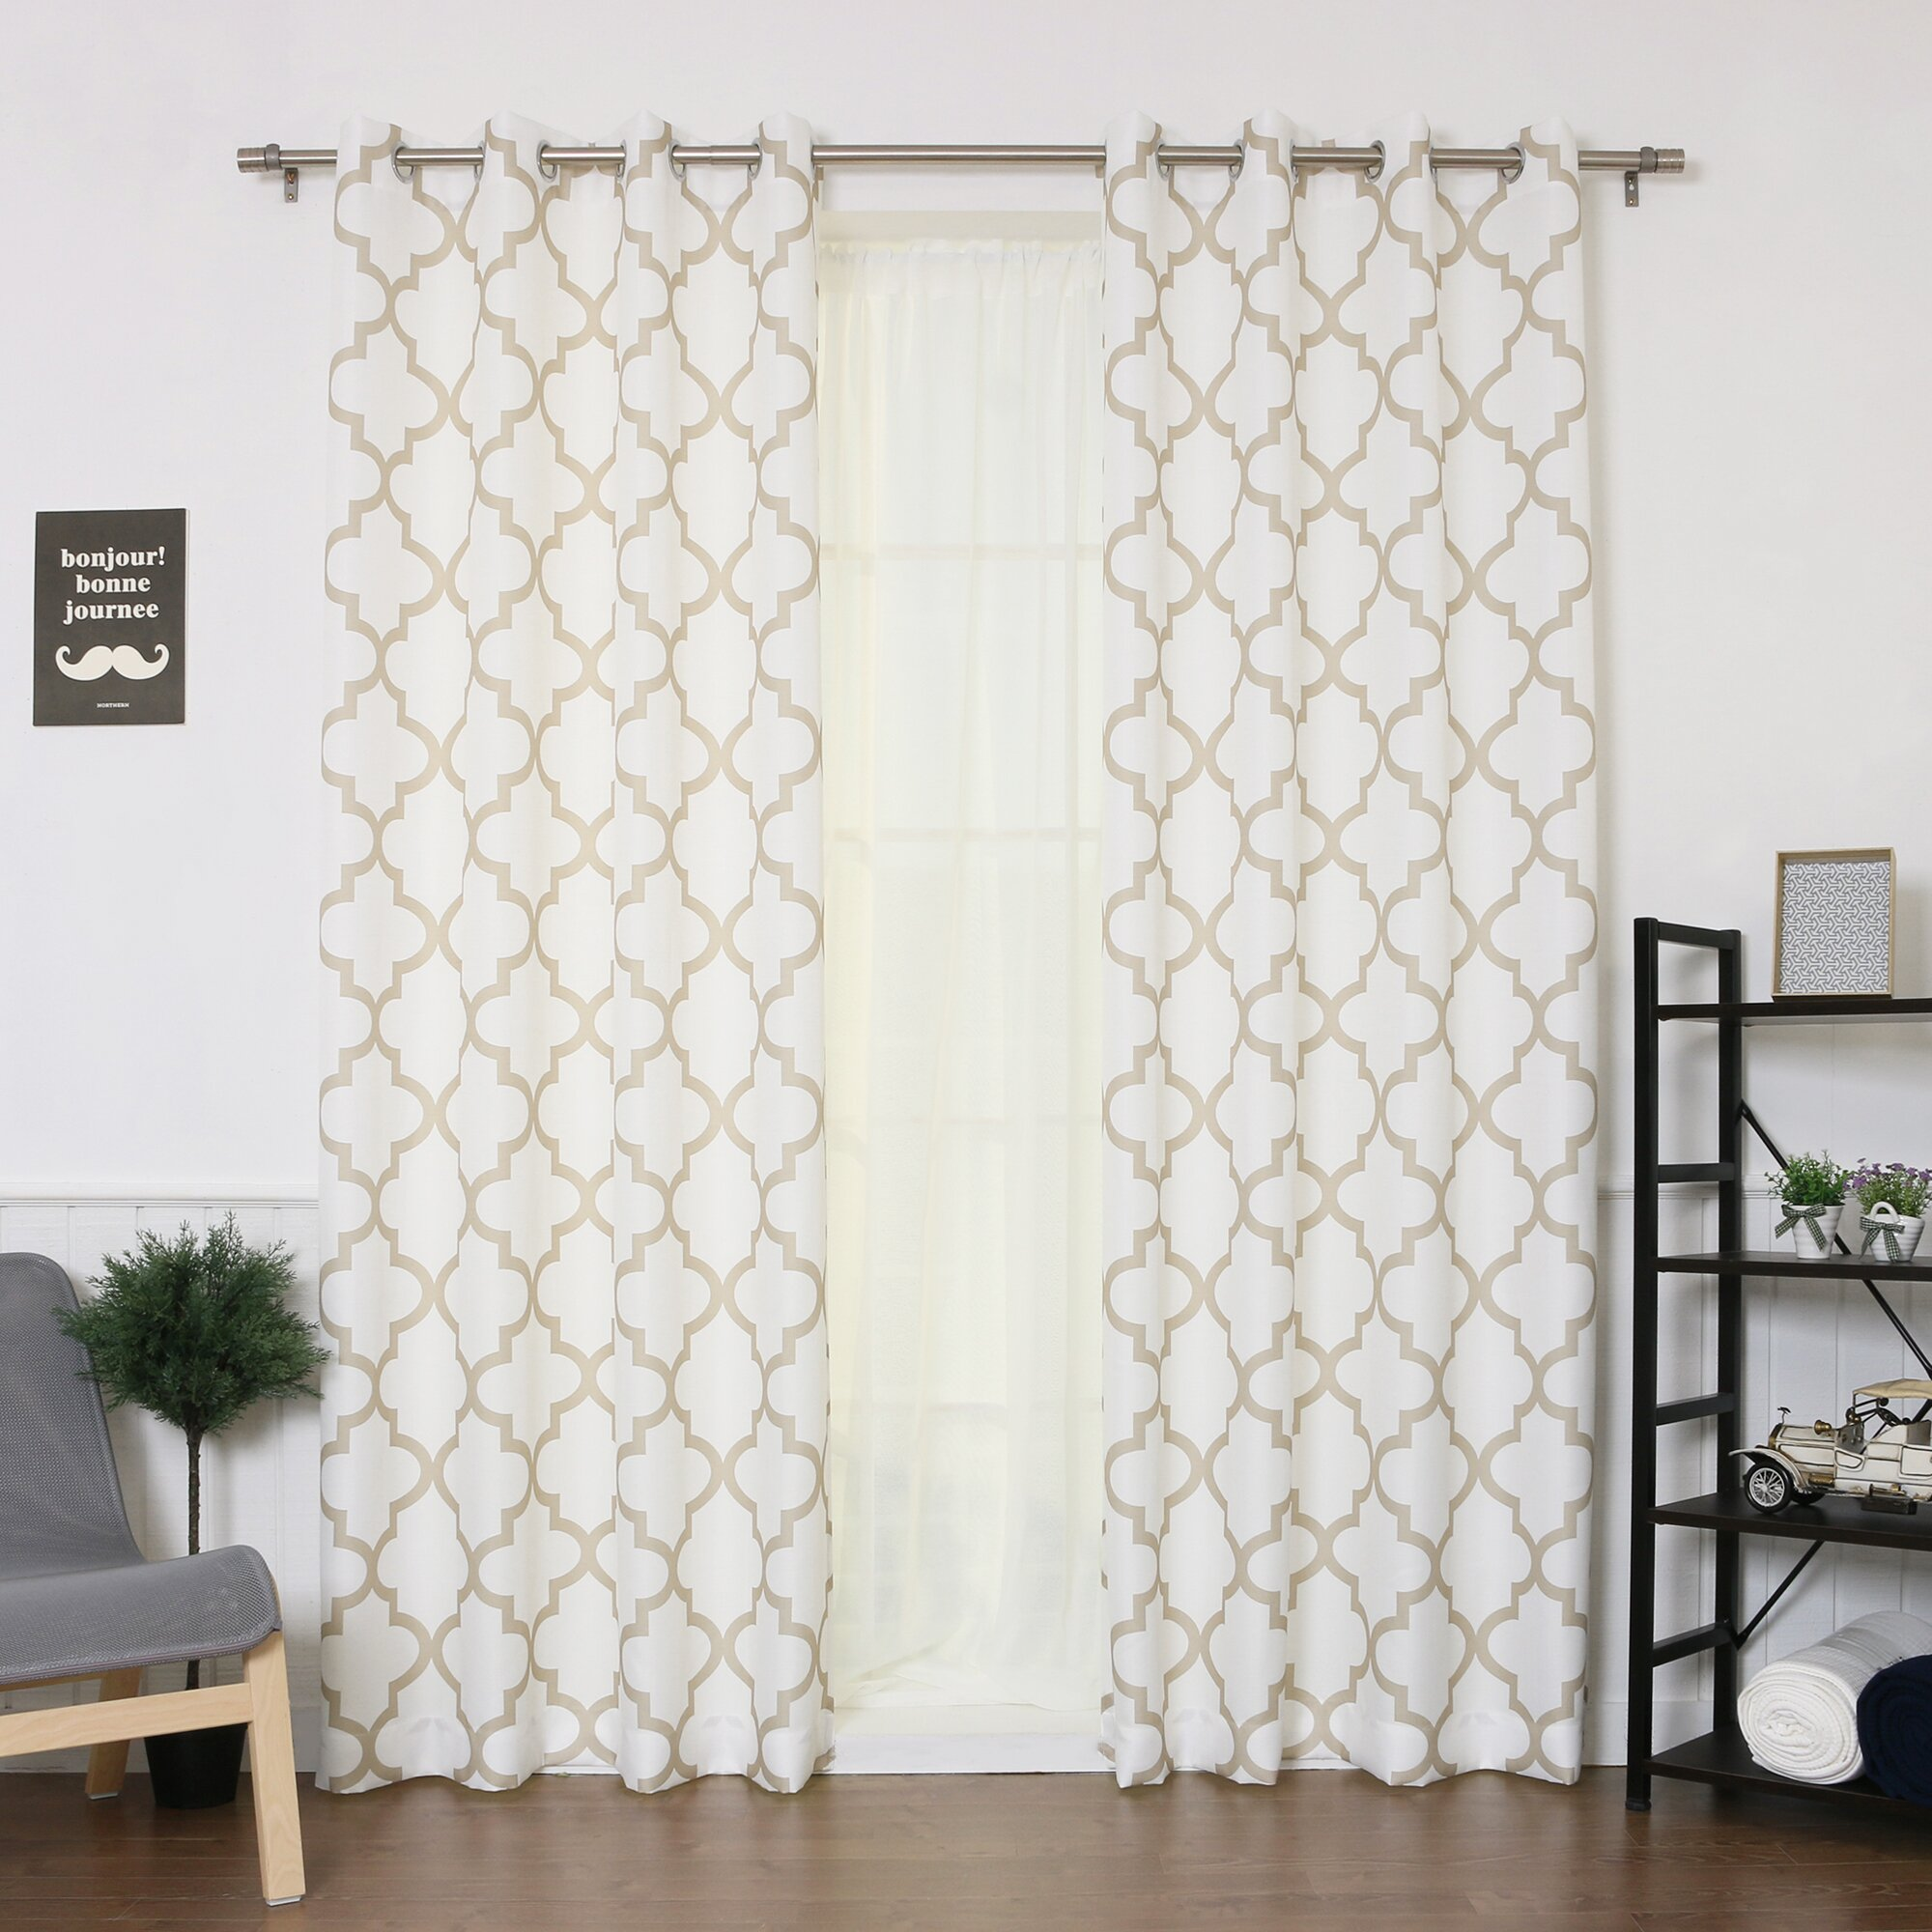 Best Home Fashion Inc Oxford Basketweave Curtain Panels